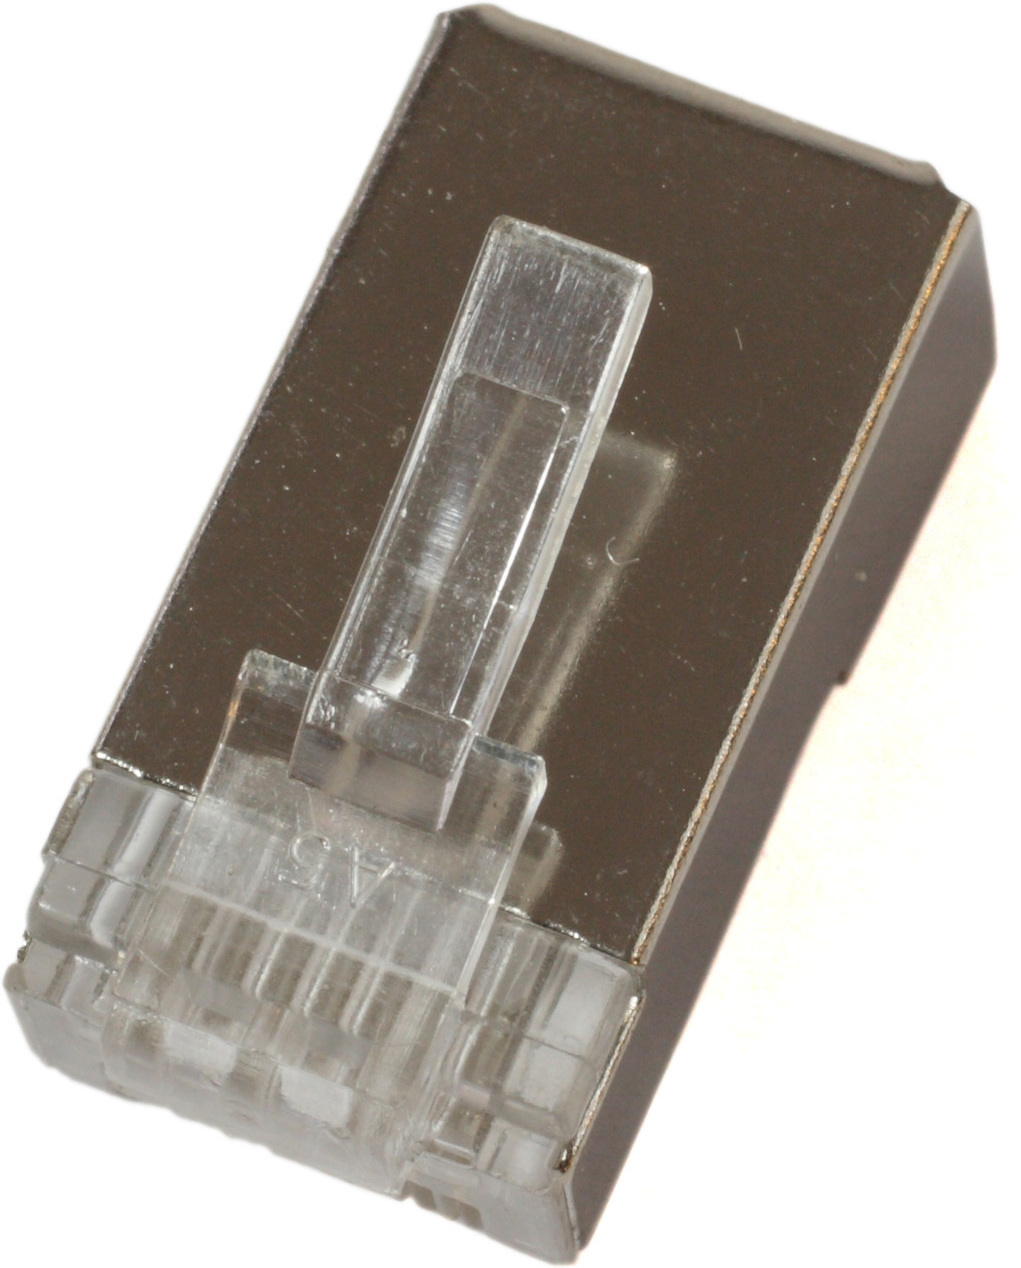 MICROCONNECT KON504-10 MODULAR PLUG RJ-45 MP8P8C CAT5E